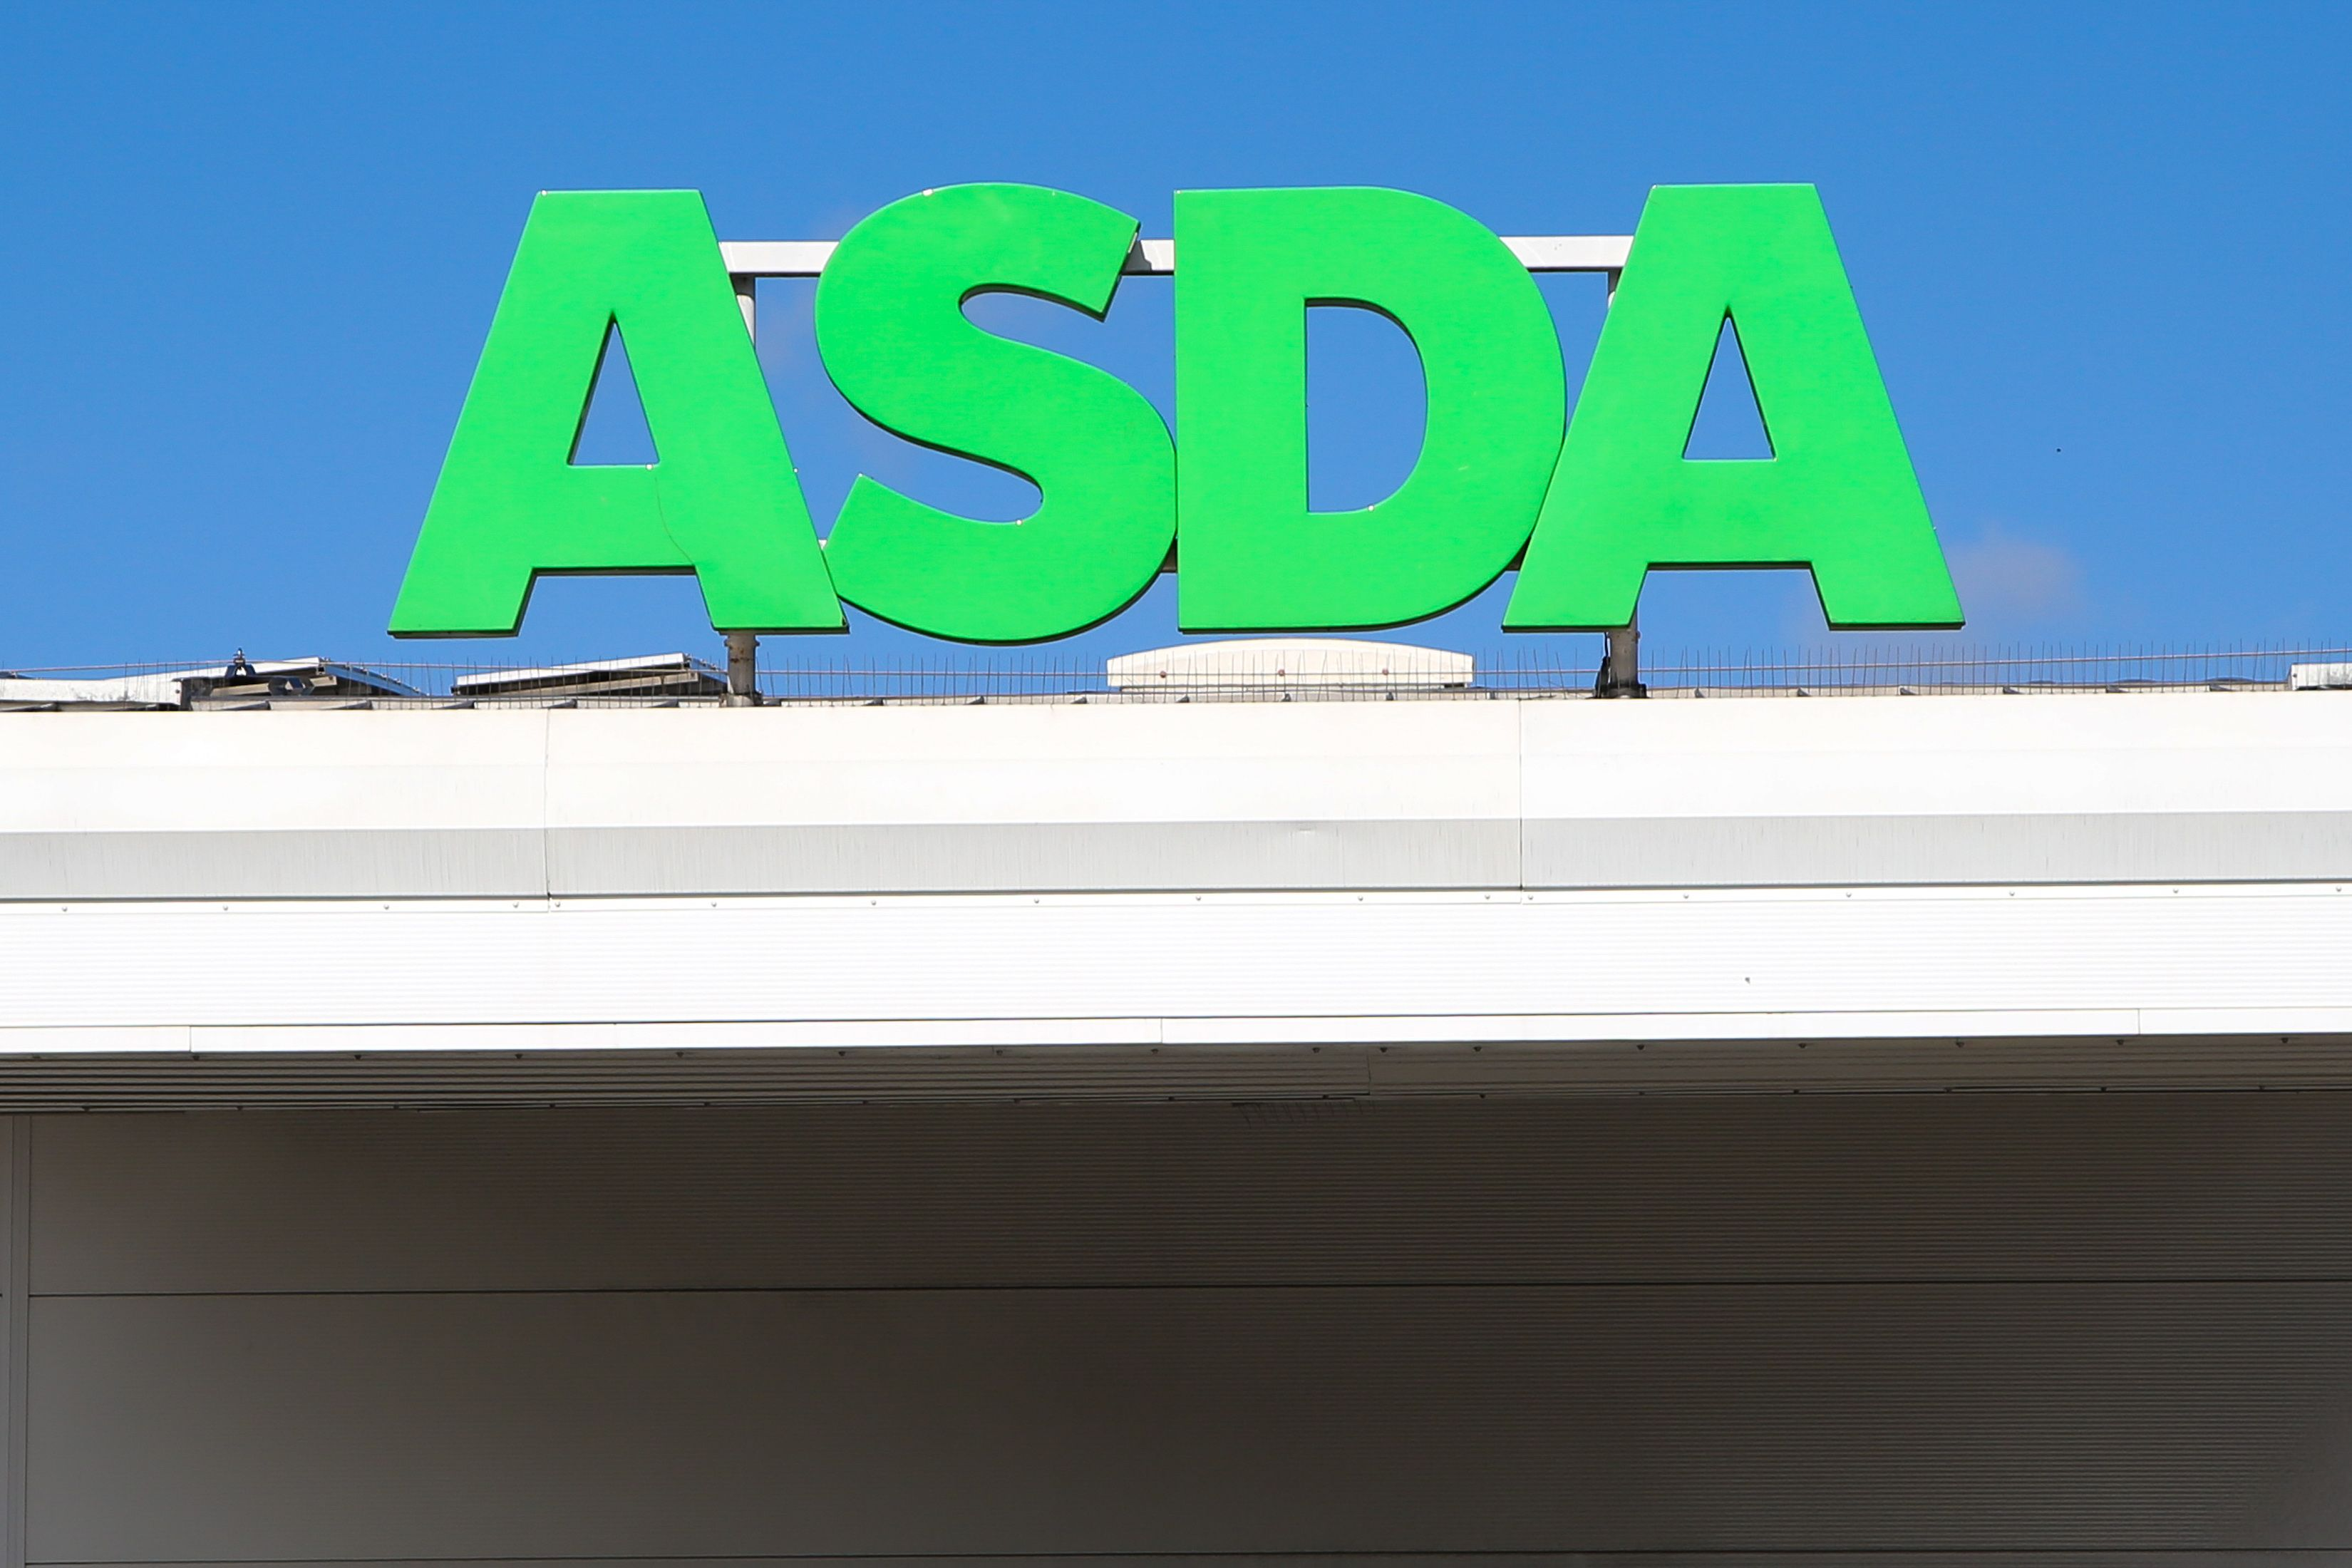 Asda opens first ever sustainability store in Leeds